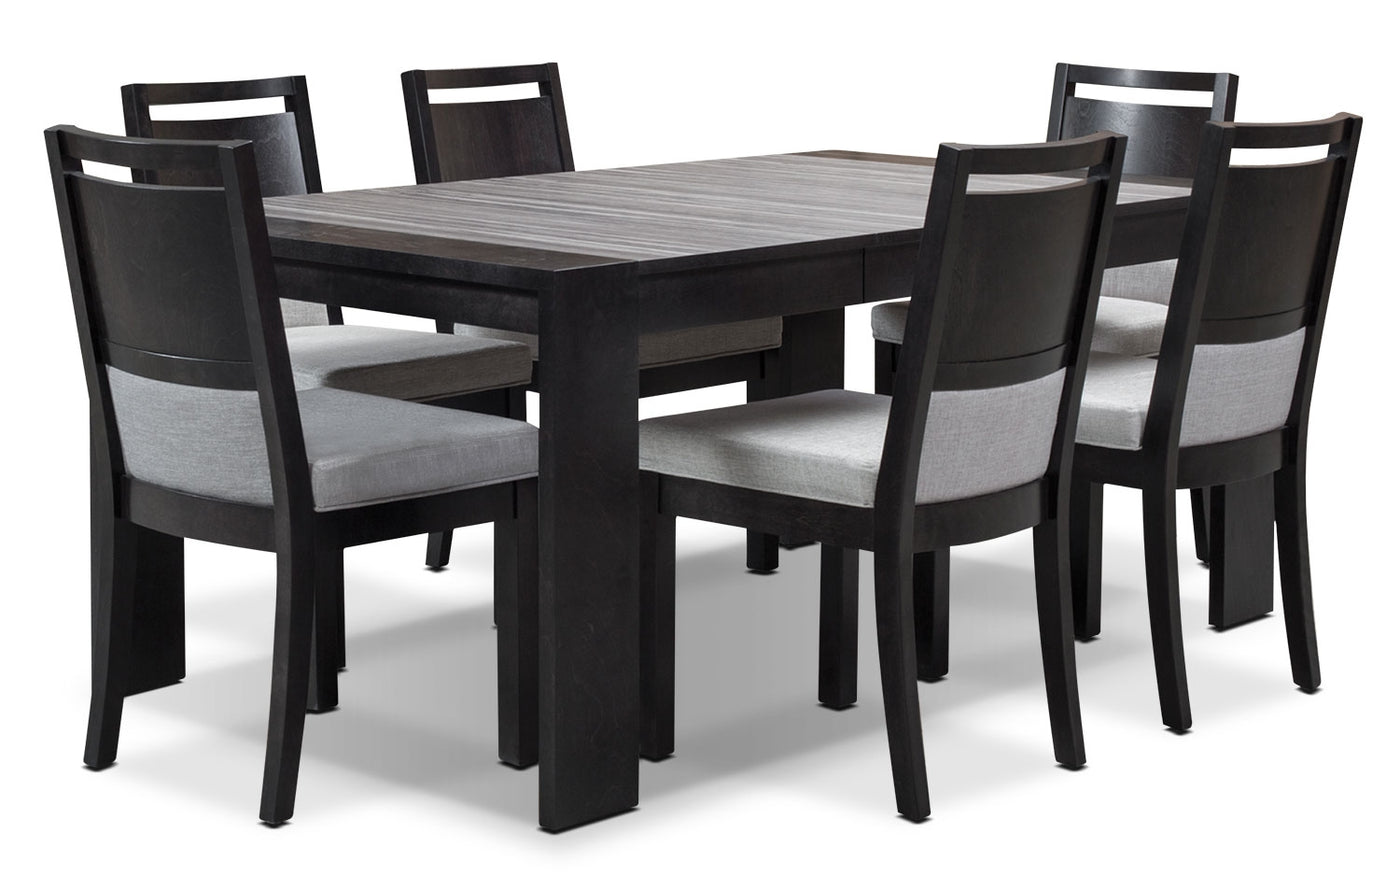 Brilliant Khala 7 Piece Dining Room Set Espresso Home Interior And Landscaping Mentranervesignezvosmurscom